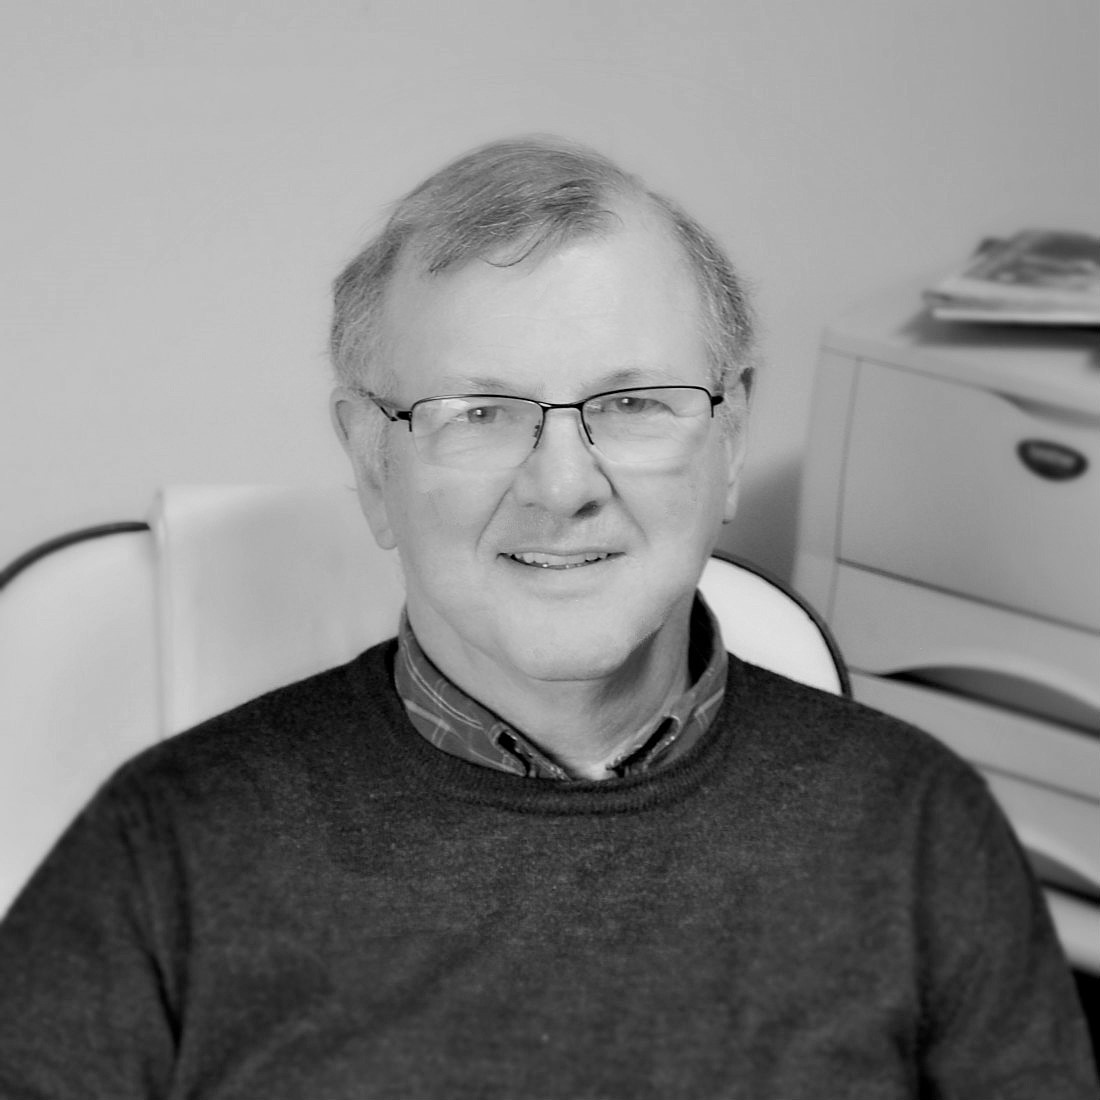 Dave Walker - Consultant  Dave has been managing and developing successful electronic businesses for the last 40 years, with experience spanning both small and large operations. In his new role Dave will support Sutech in a consultancy capacity, drawing on his insight to help the business continue to grow and develop.